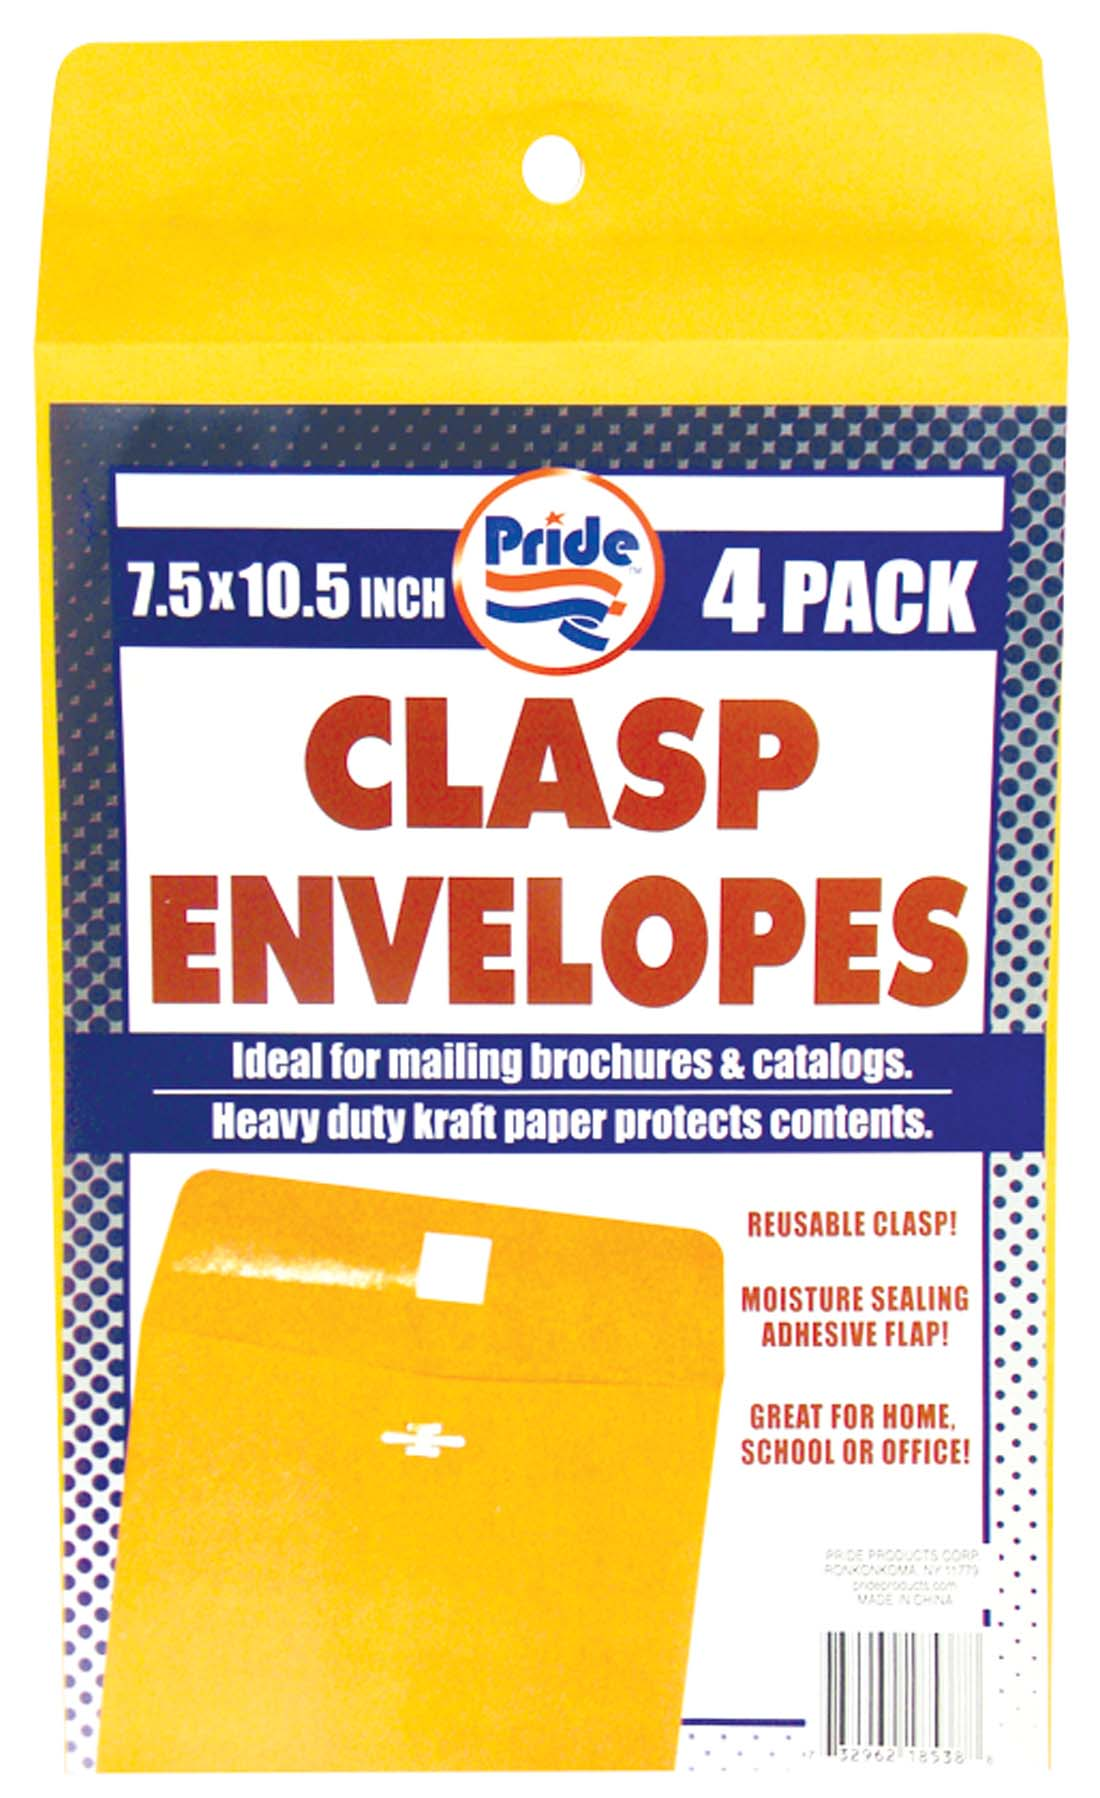 View CLASP ENVELOPE 4 PACK 7.5 X 10.5 INCH